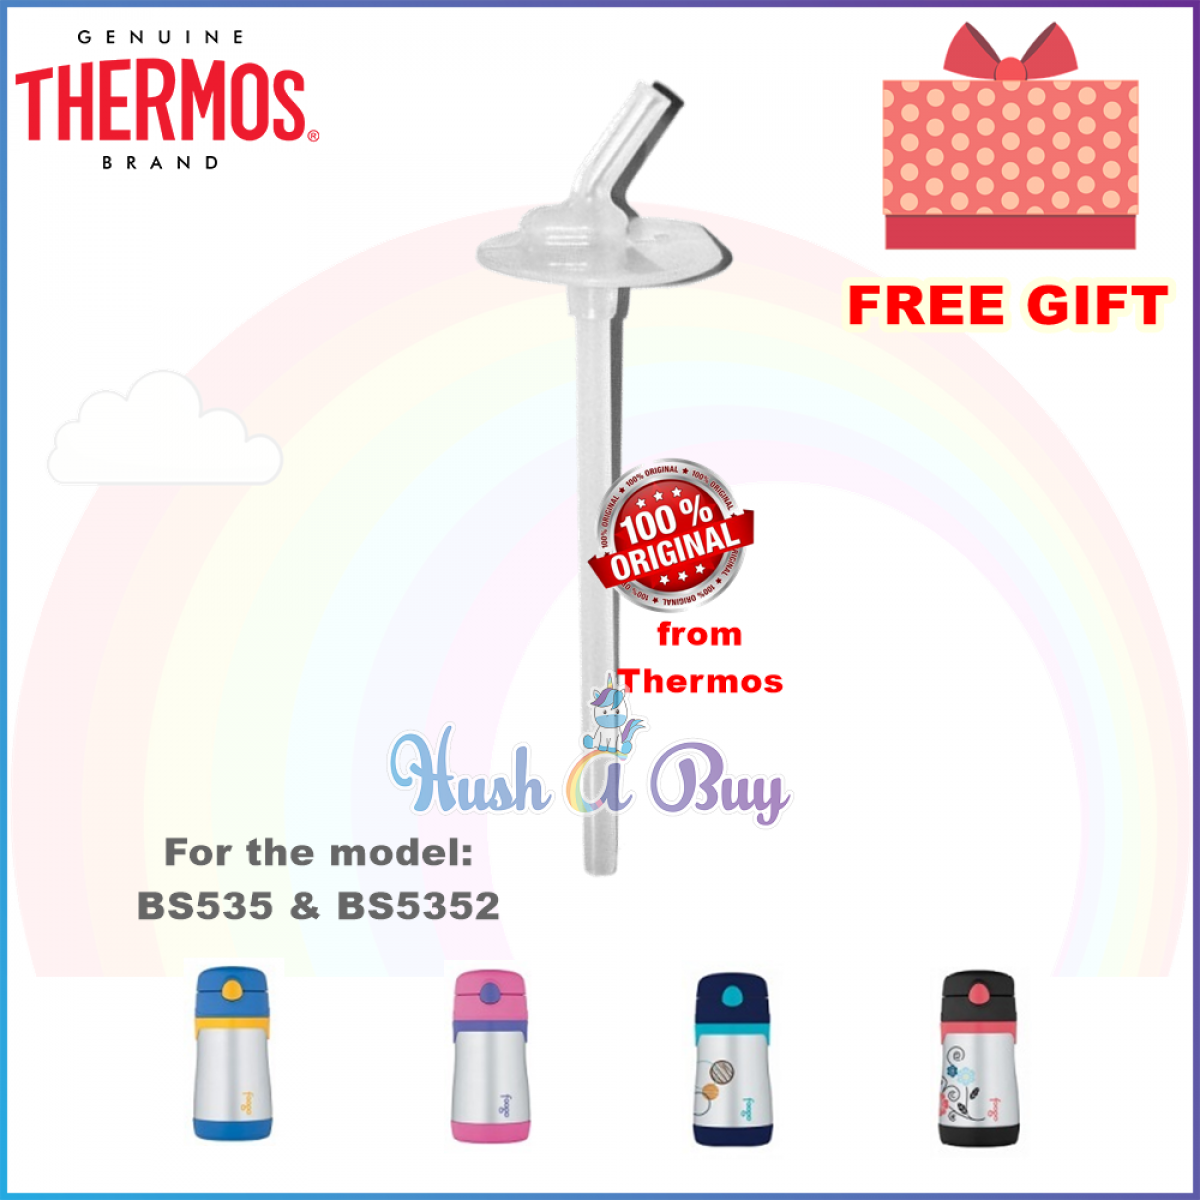 Thermos Spare Straw Complete Set for BS535 and BS5352 - FREE STRAW BRUSH